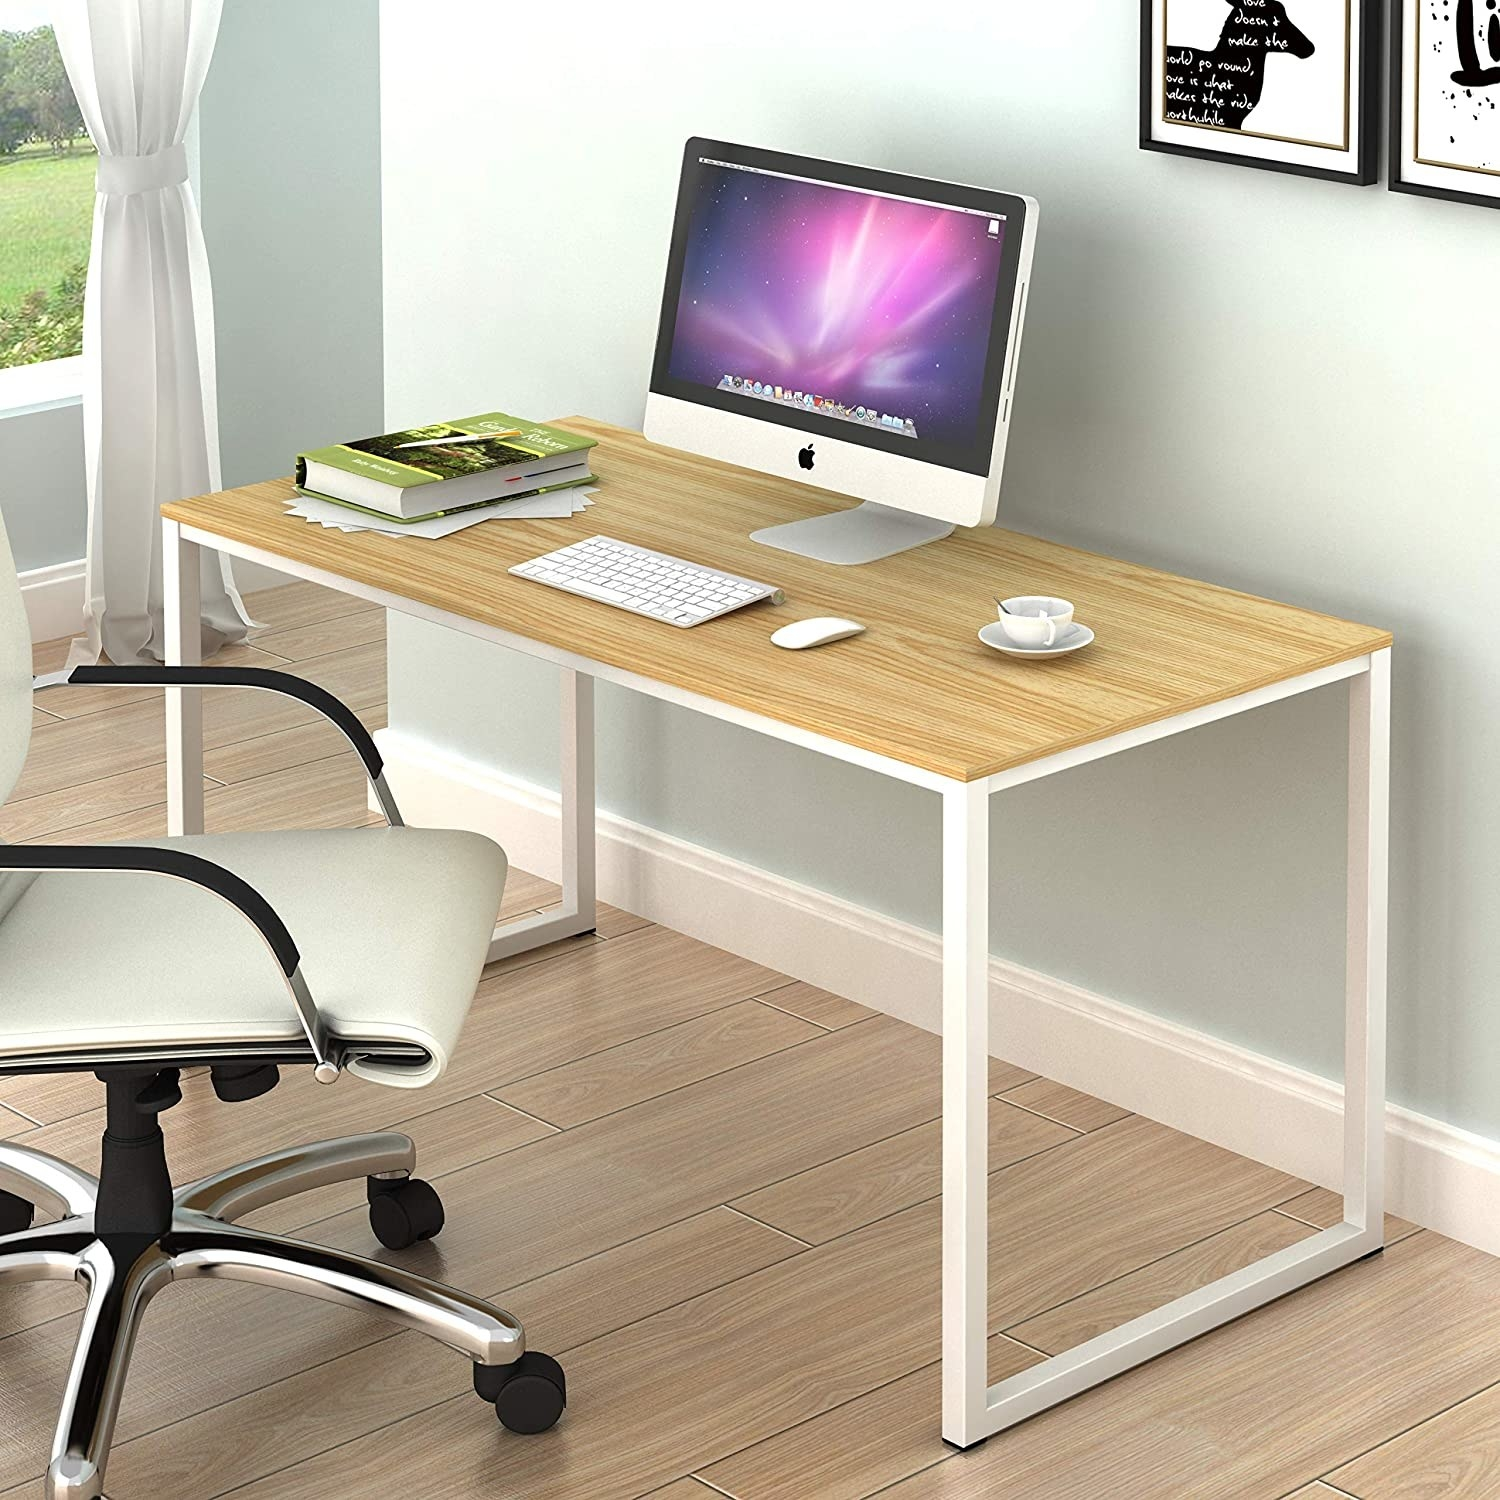 A desk in an office with a chair and a monitor